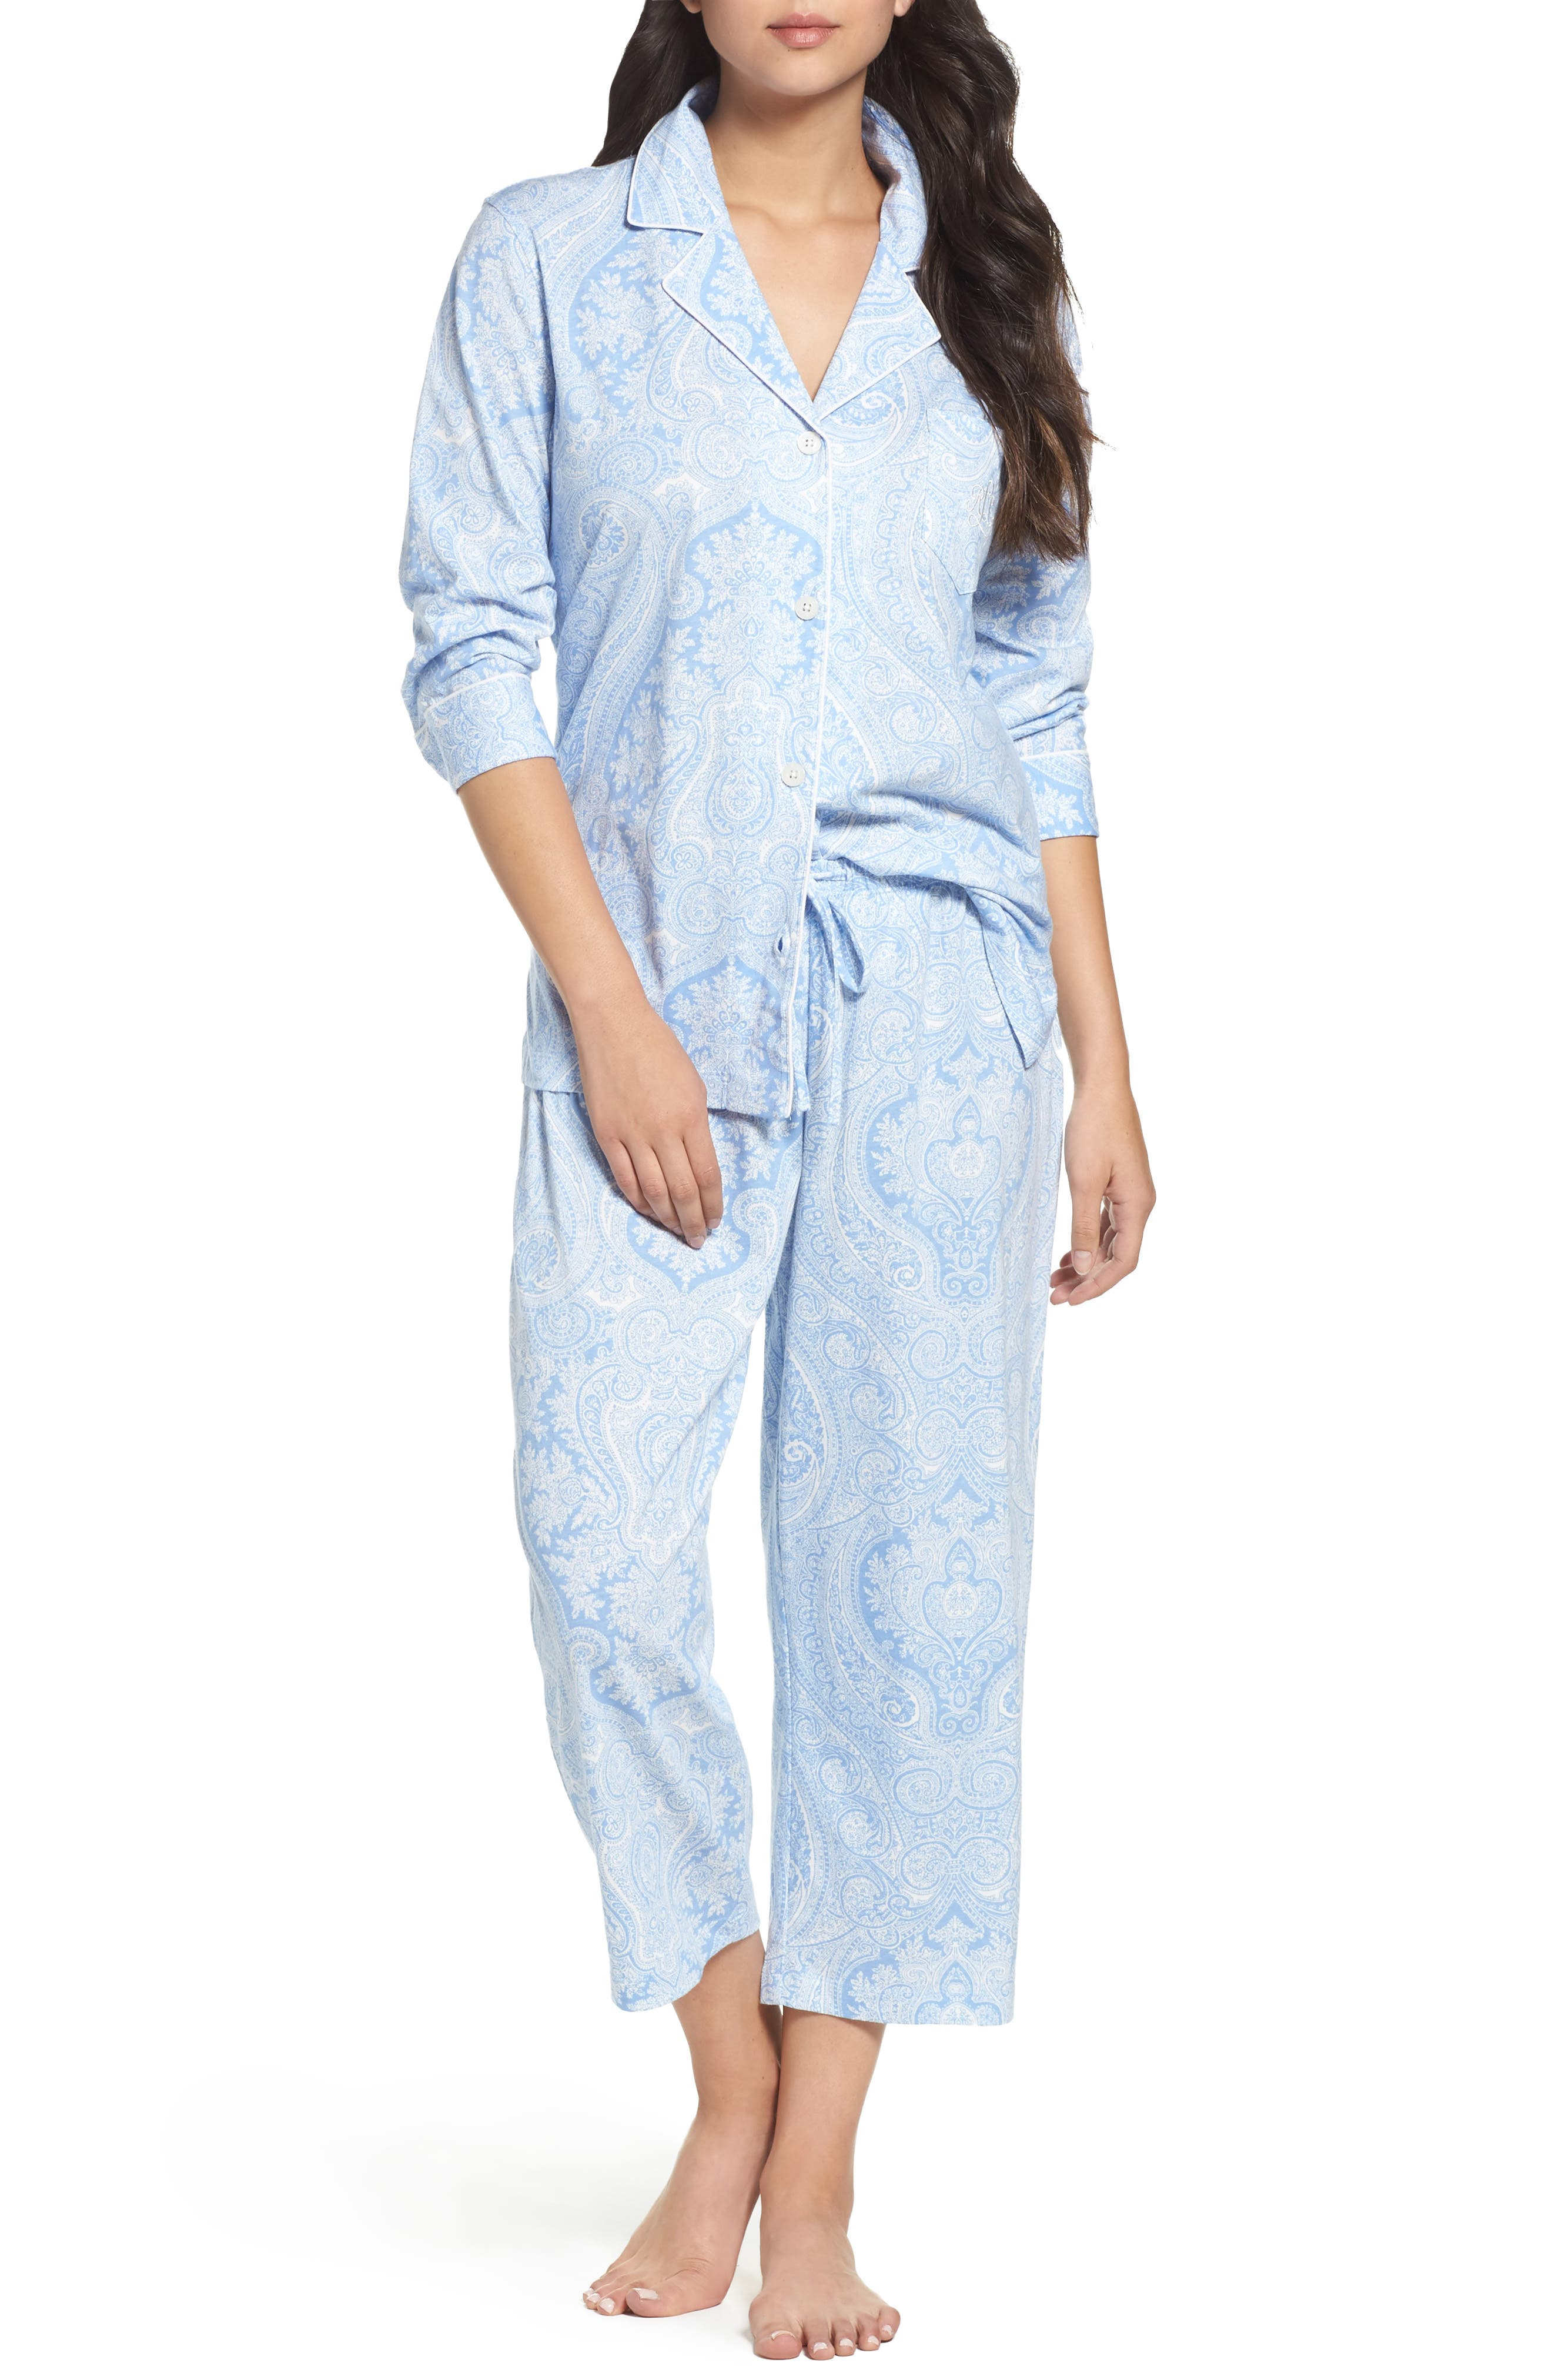 Lauren by Ralph Lauren Further Lane Pajamas